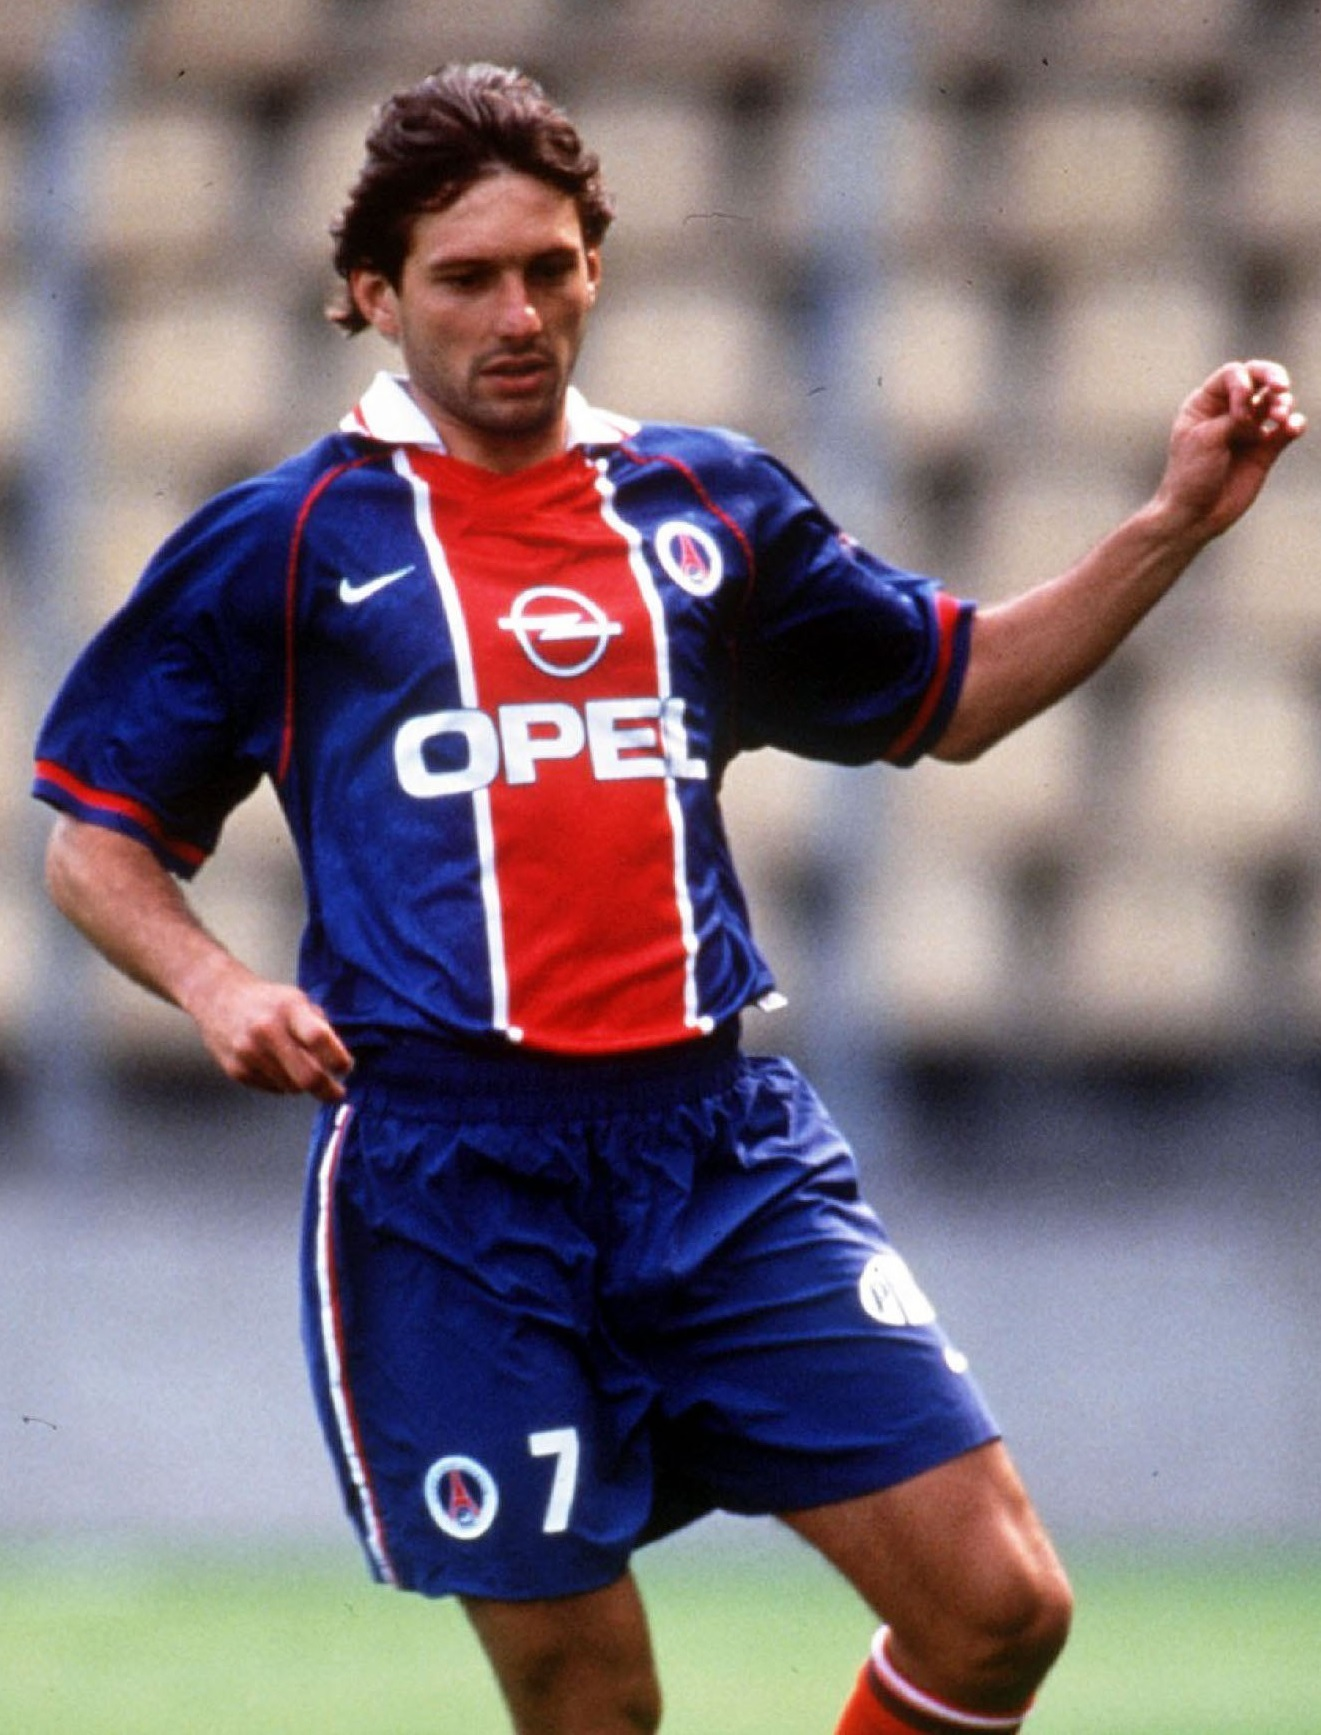 Paris-Saint-Germain-1996-97-home-kit-Leonardo.jpg